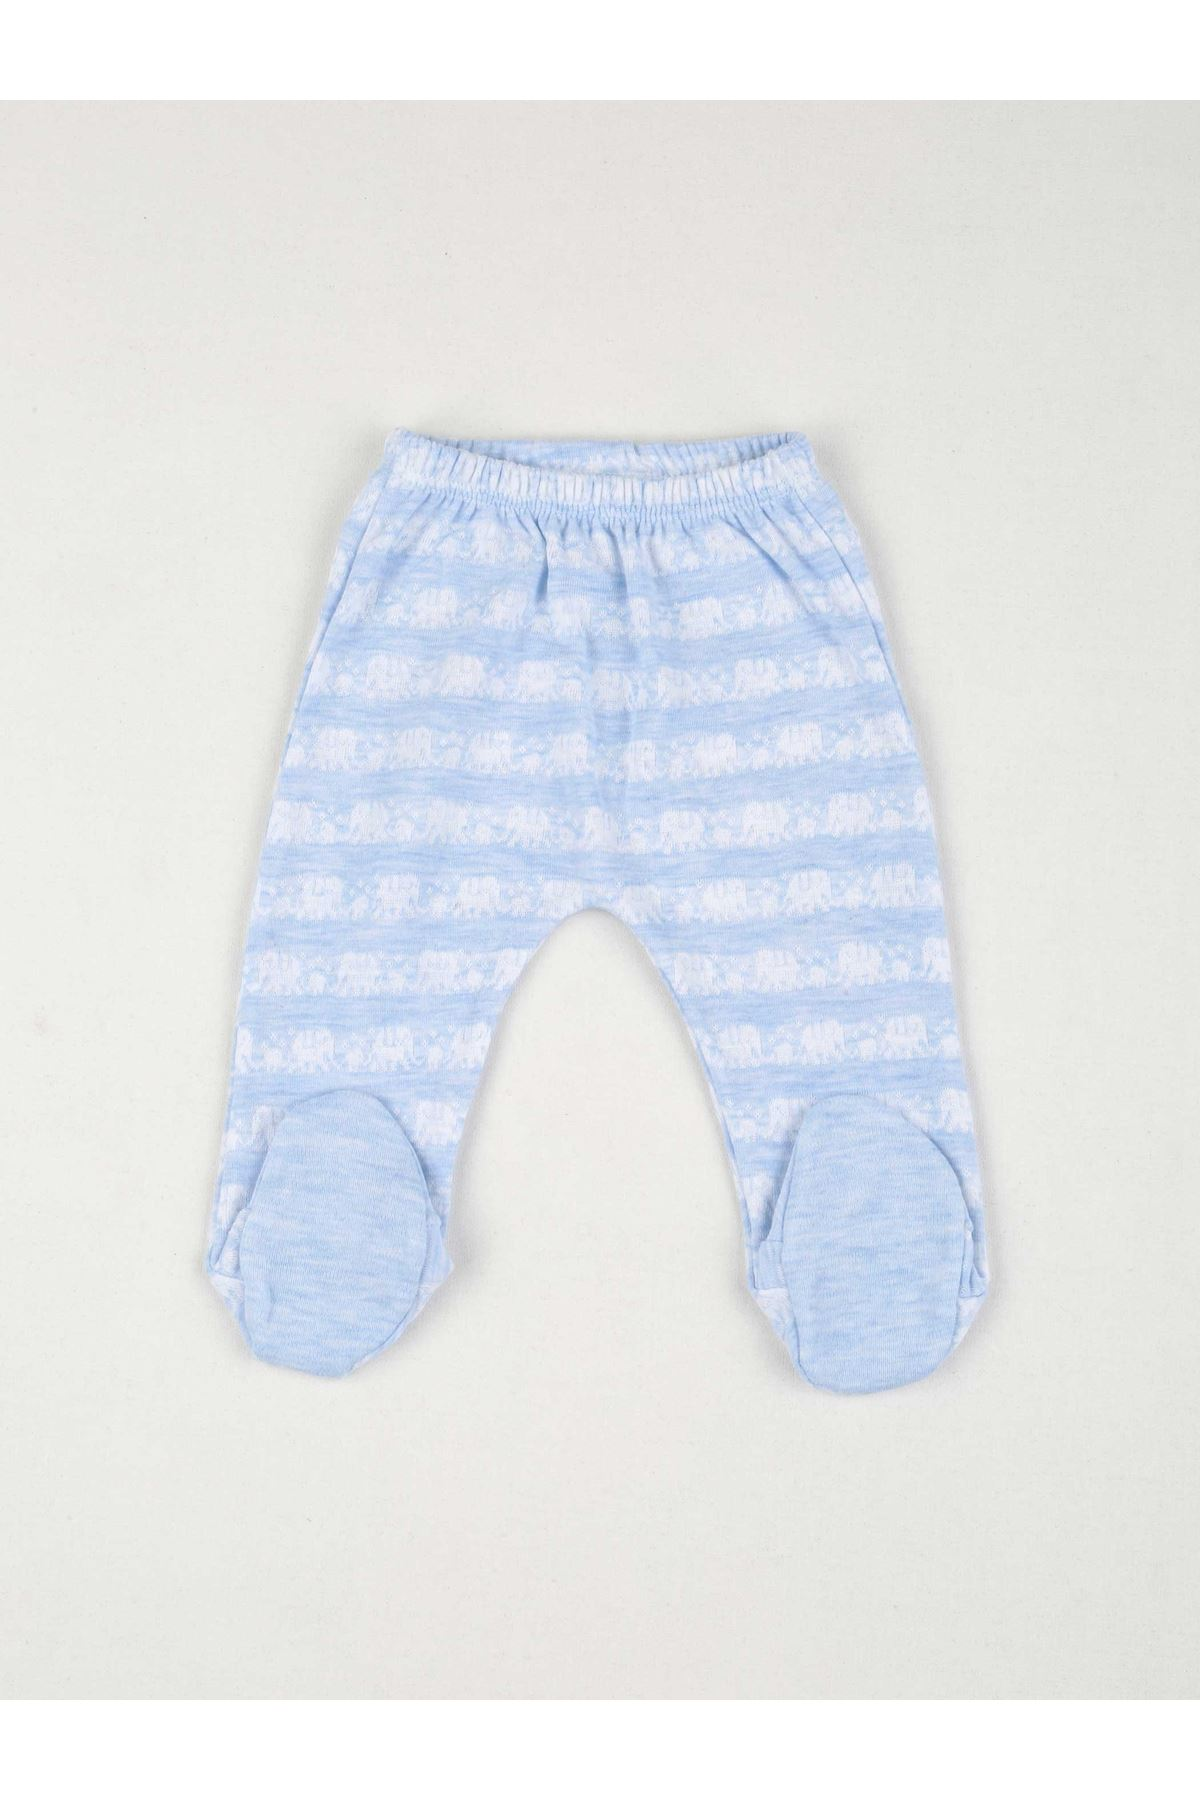 Blue Newborn baby boy 5 piece suit set cotton hospital out daily casual baby clothes style fashion models